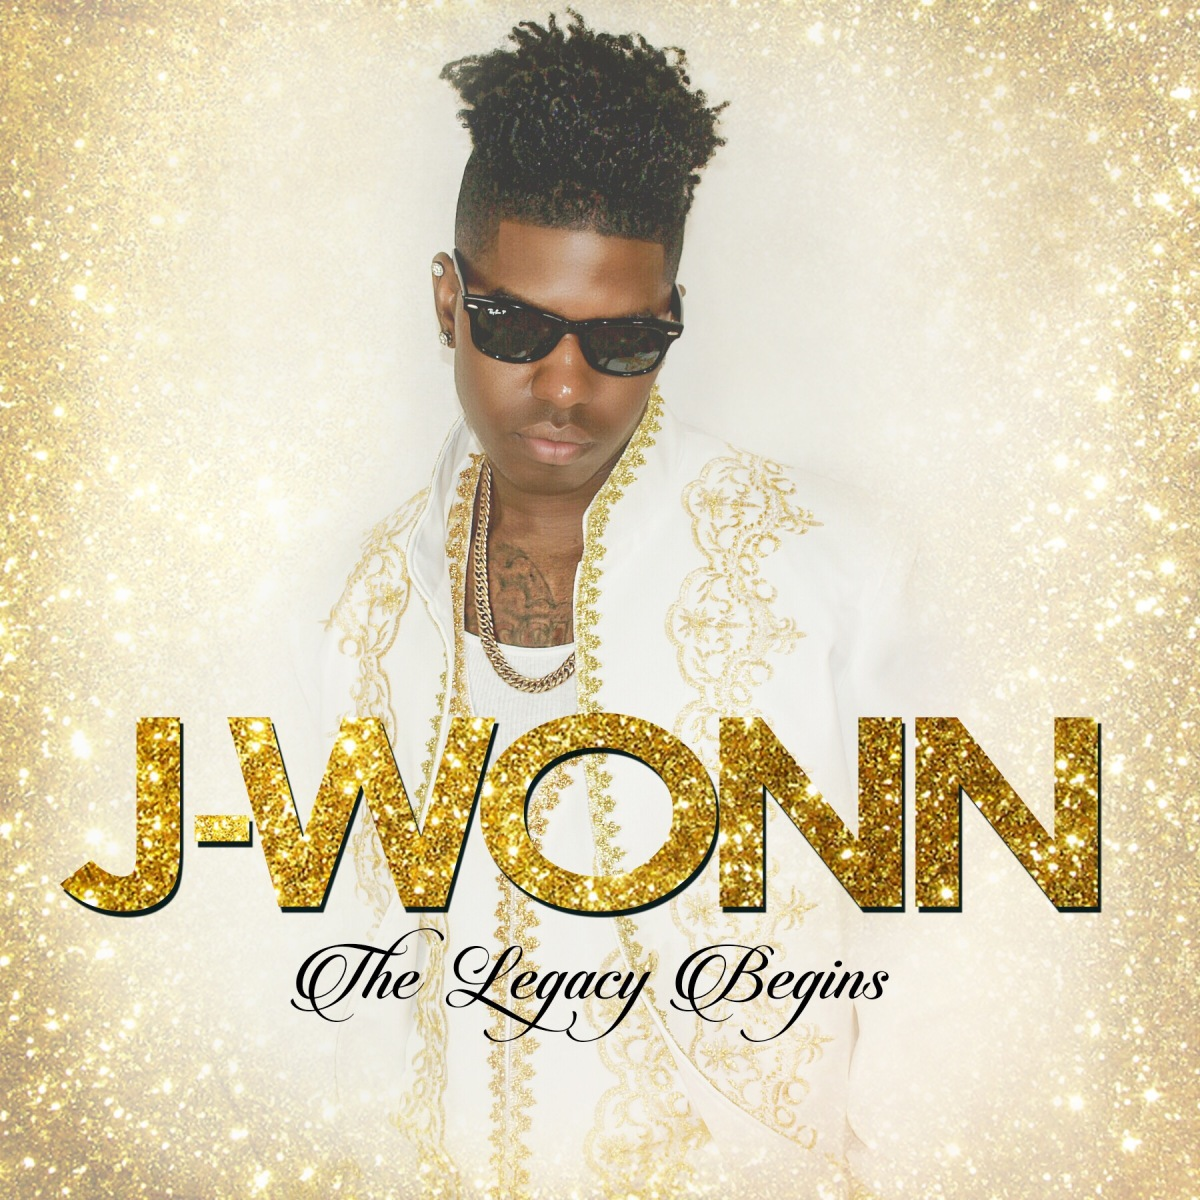 Person of the Week: JWonn